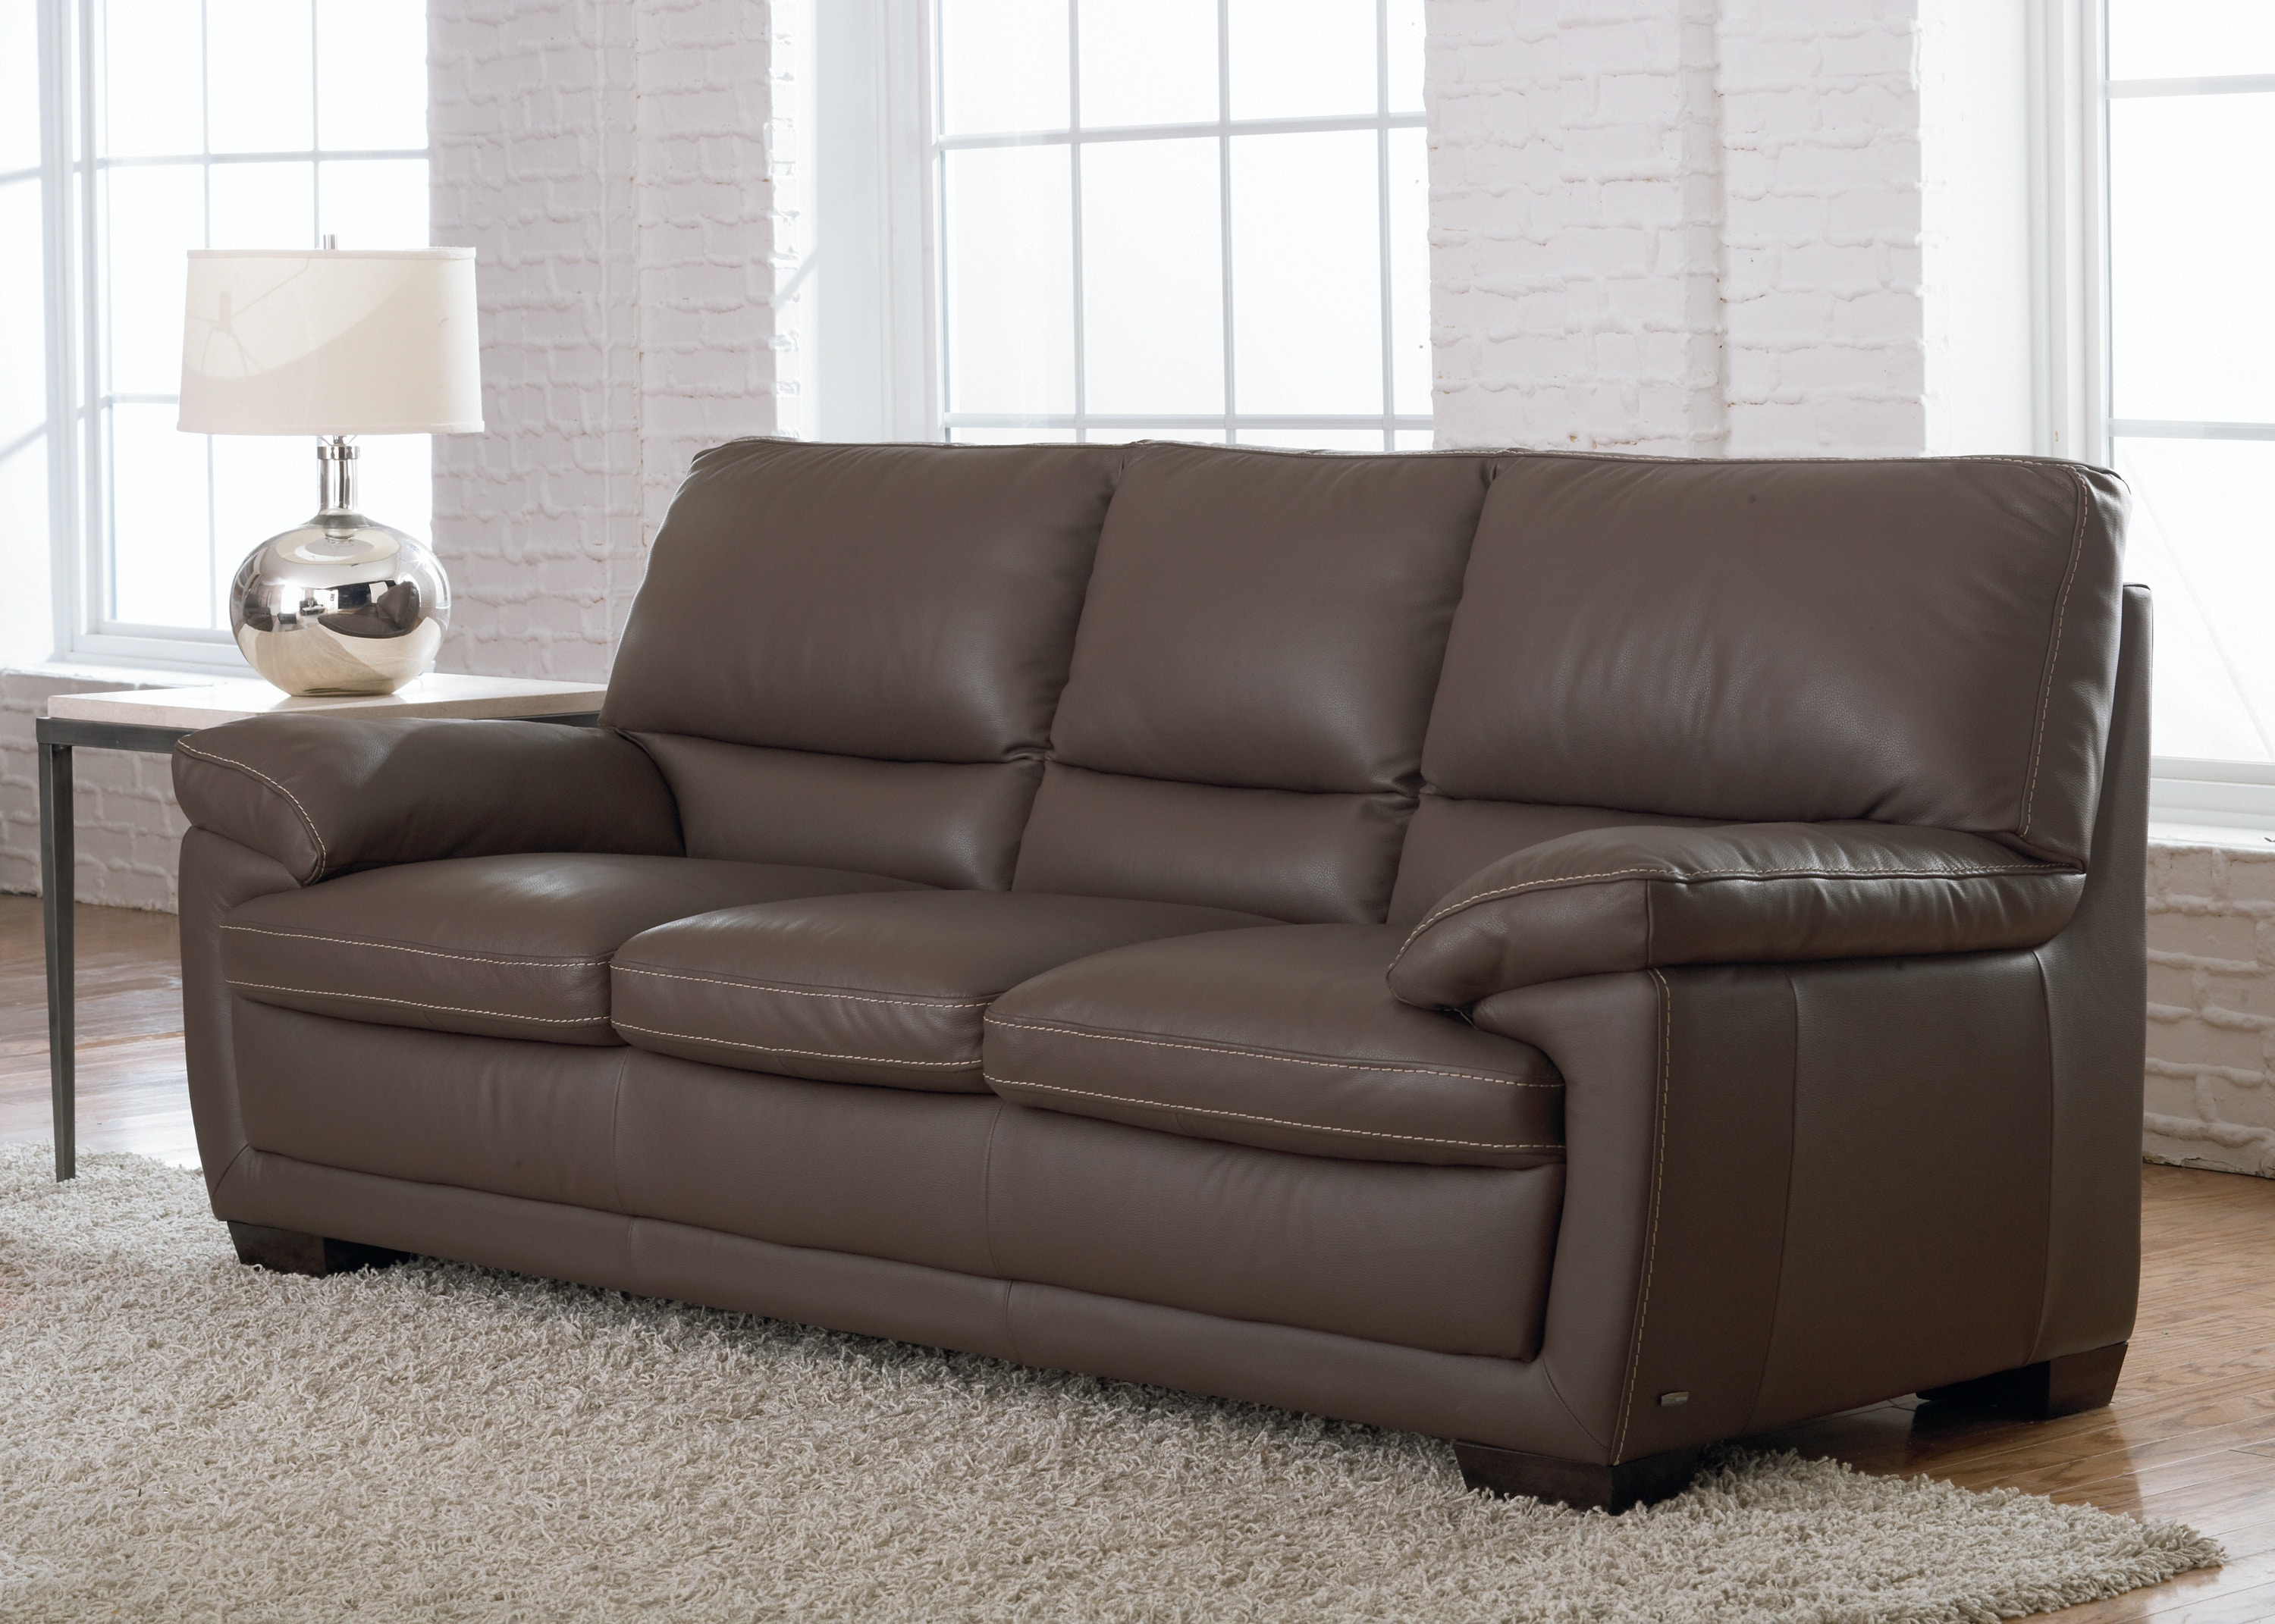 Natuzzi Sectional Leather Sofa Natuzzi A319 3seat Leather Sofa